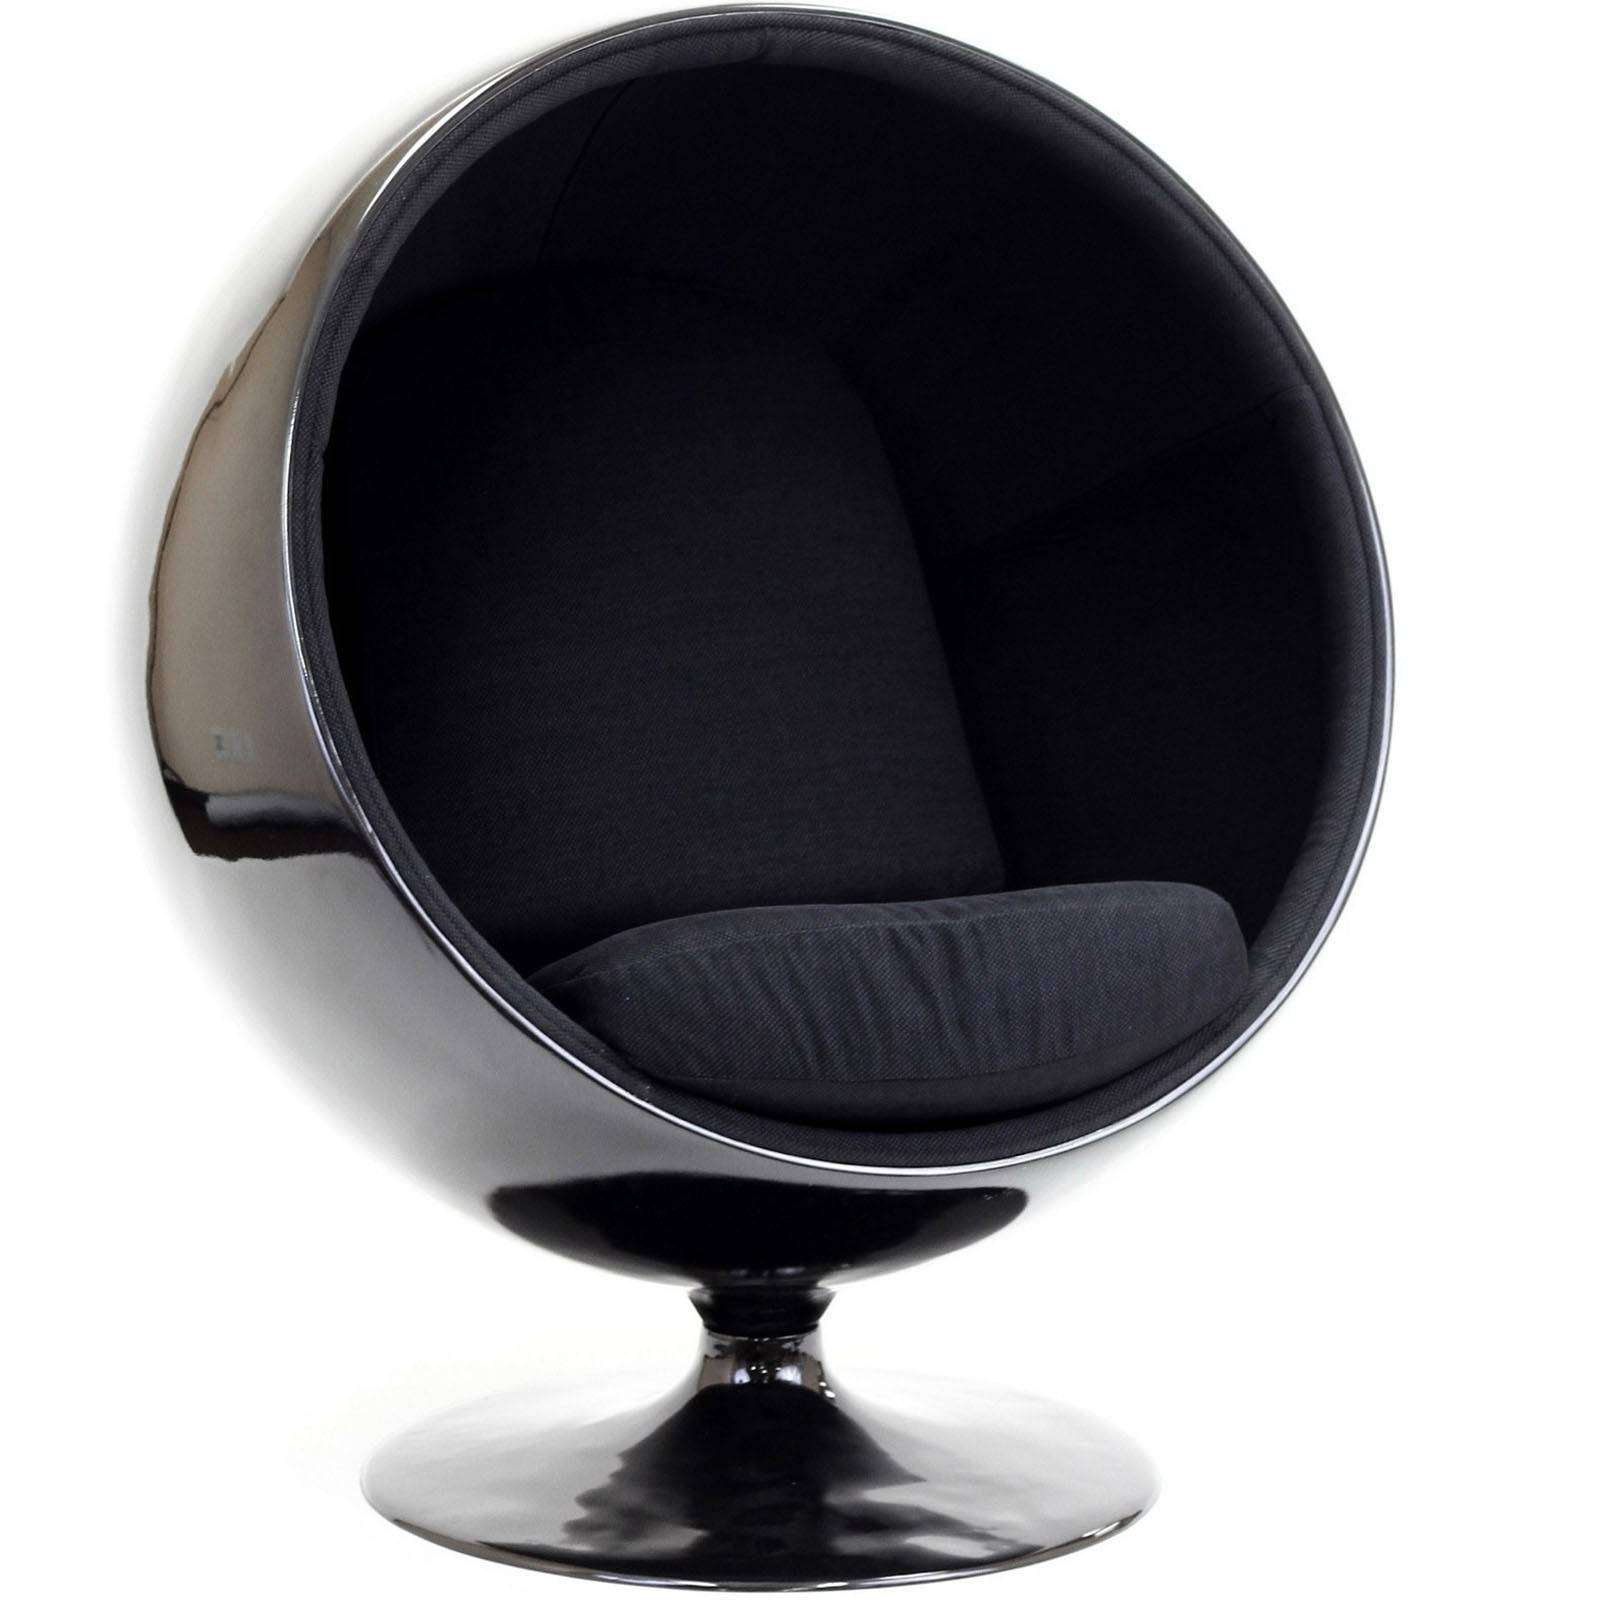 eero aarnio style ball chair. Black Bedroom Furniture Sets. Home Design Ideas